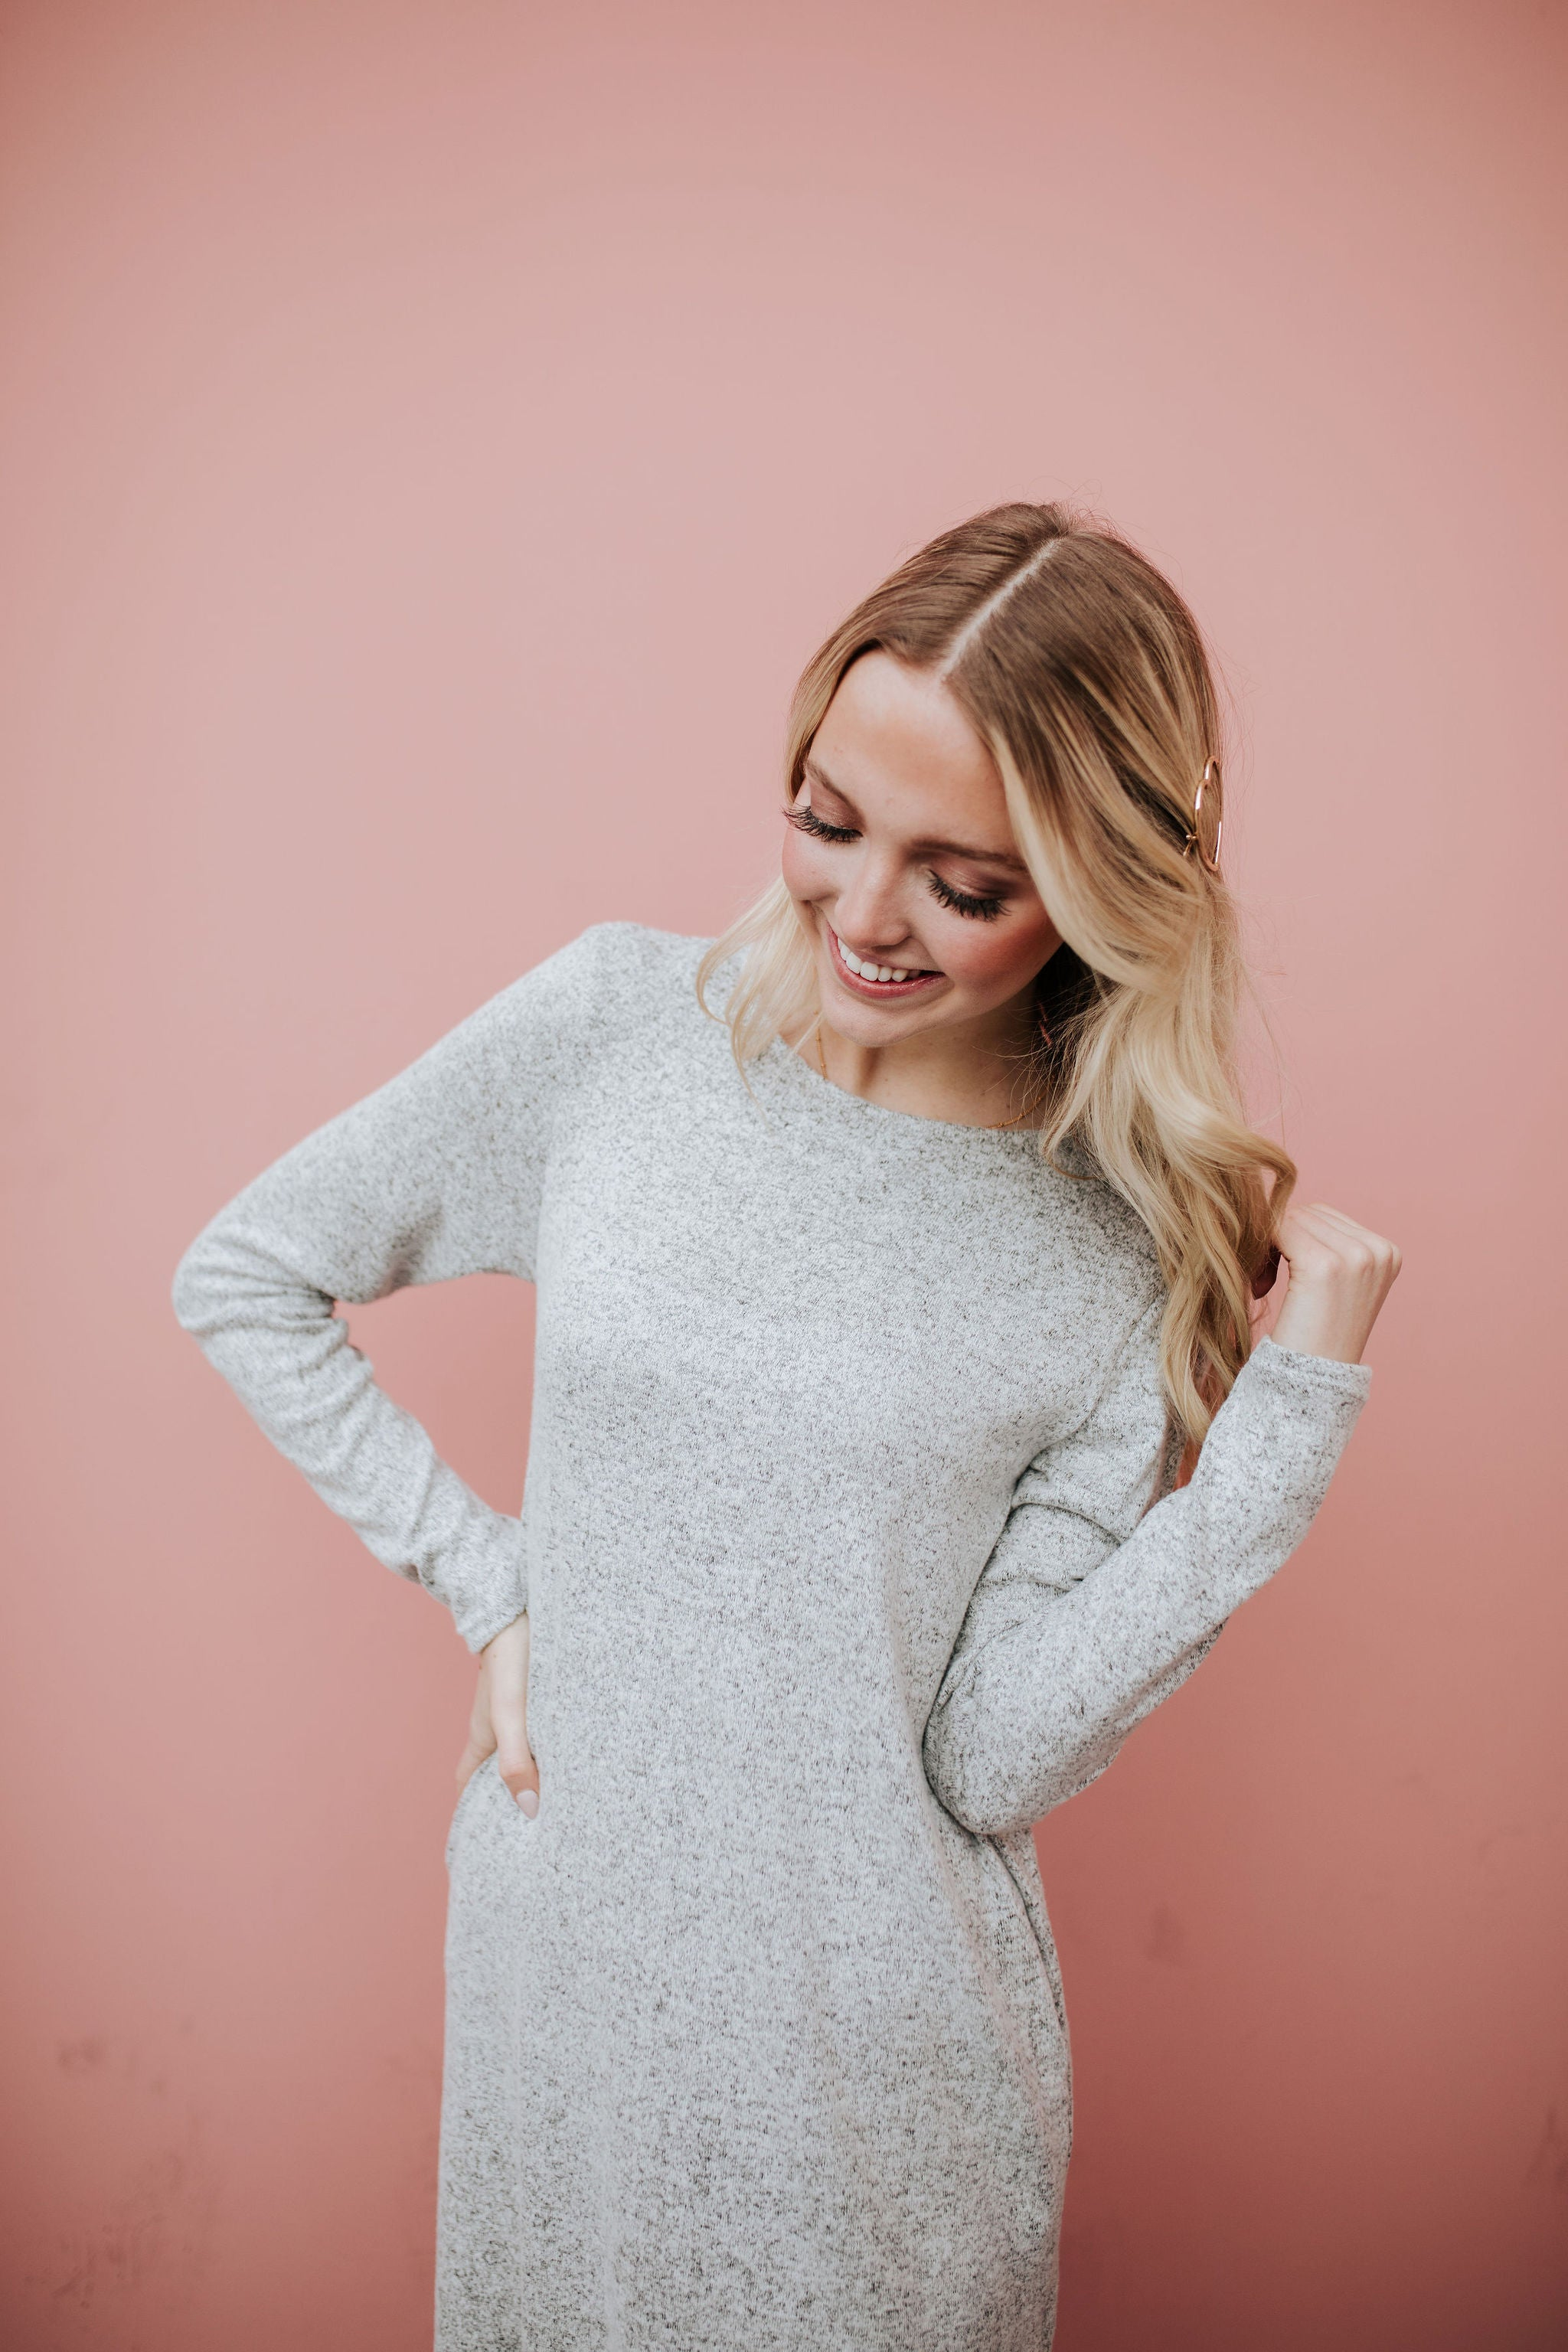 THE FRESNO LONG SLEEVE DRESS IN HEATHER GREY